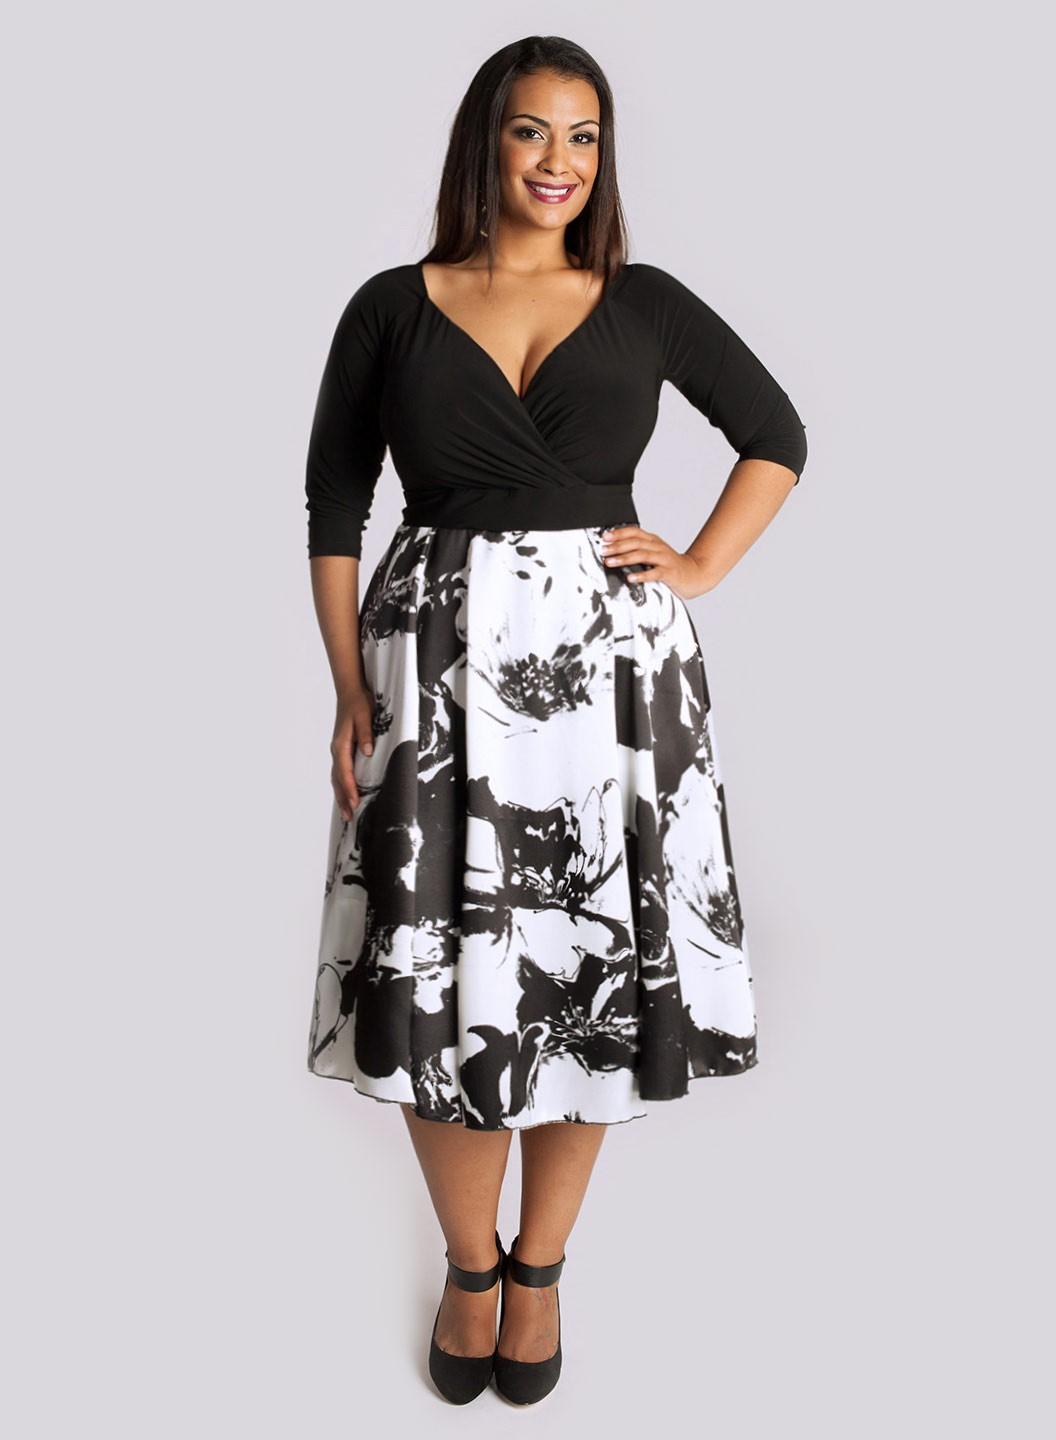 The Carpenters Daughter have a great range of plus size clothing for curvy women. Order online or from one our retail stores. New Zealand Made. Just Arrived. Spring/Summer Accessories. Finish the look with the right accessories. TCD Essentials.